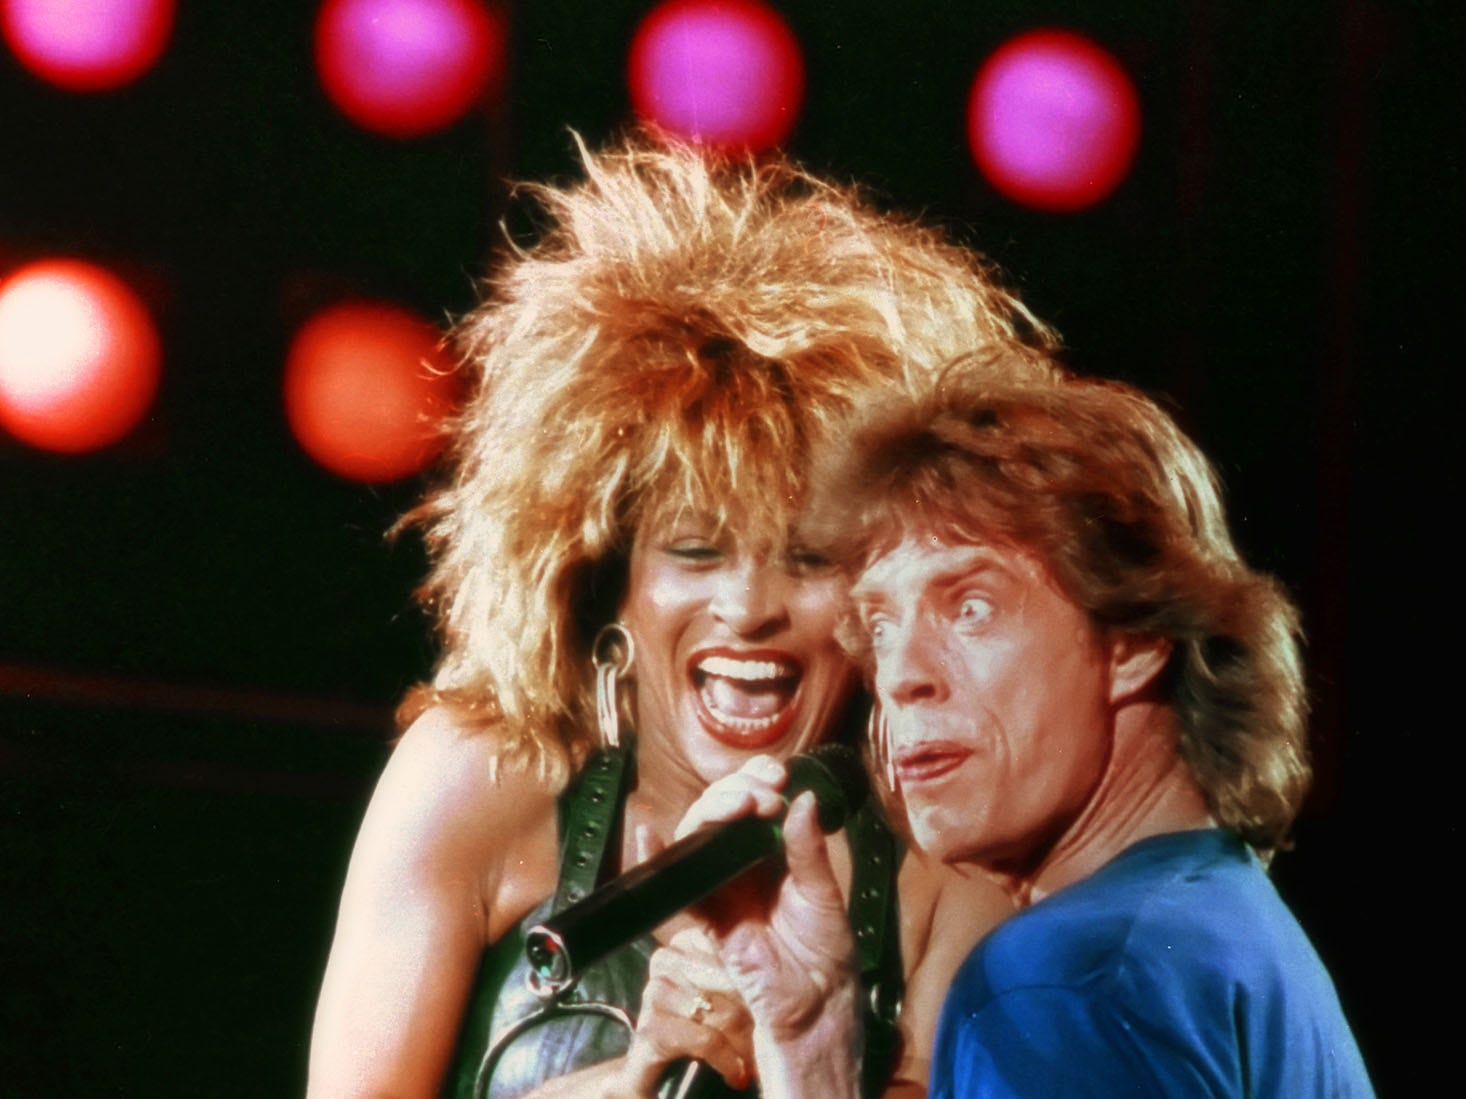 Tina Turner, left, reacts as  Mick Jagger grabs her thigh during their duo performance at the Live Aid concert in Philadelphia, Pa., July 13, 1985.  (AP Photo/Amy Sancetta) ORG XMIT: APHS199 [Via MerlinFTP Drop]